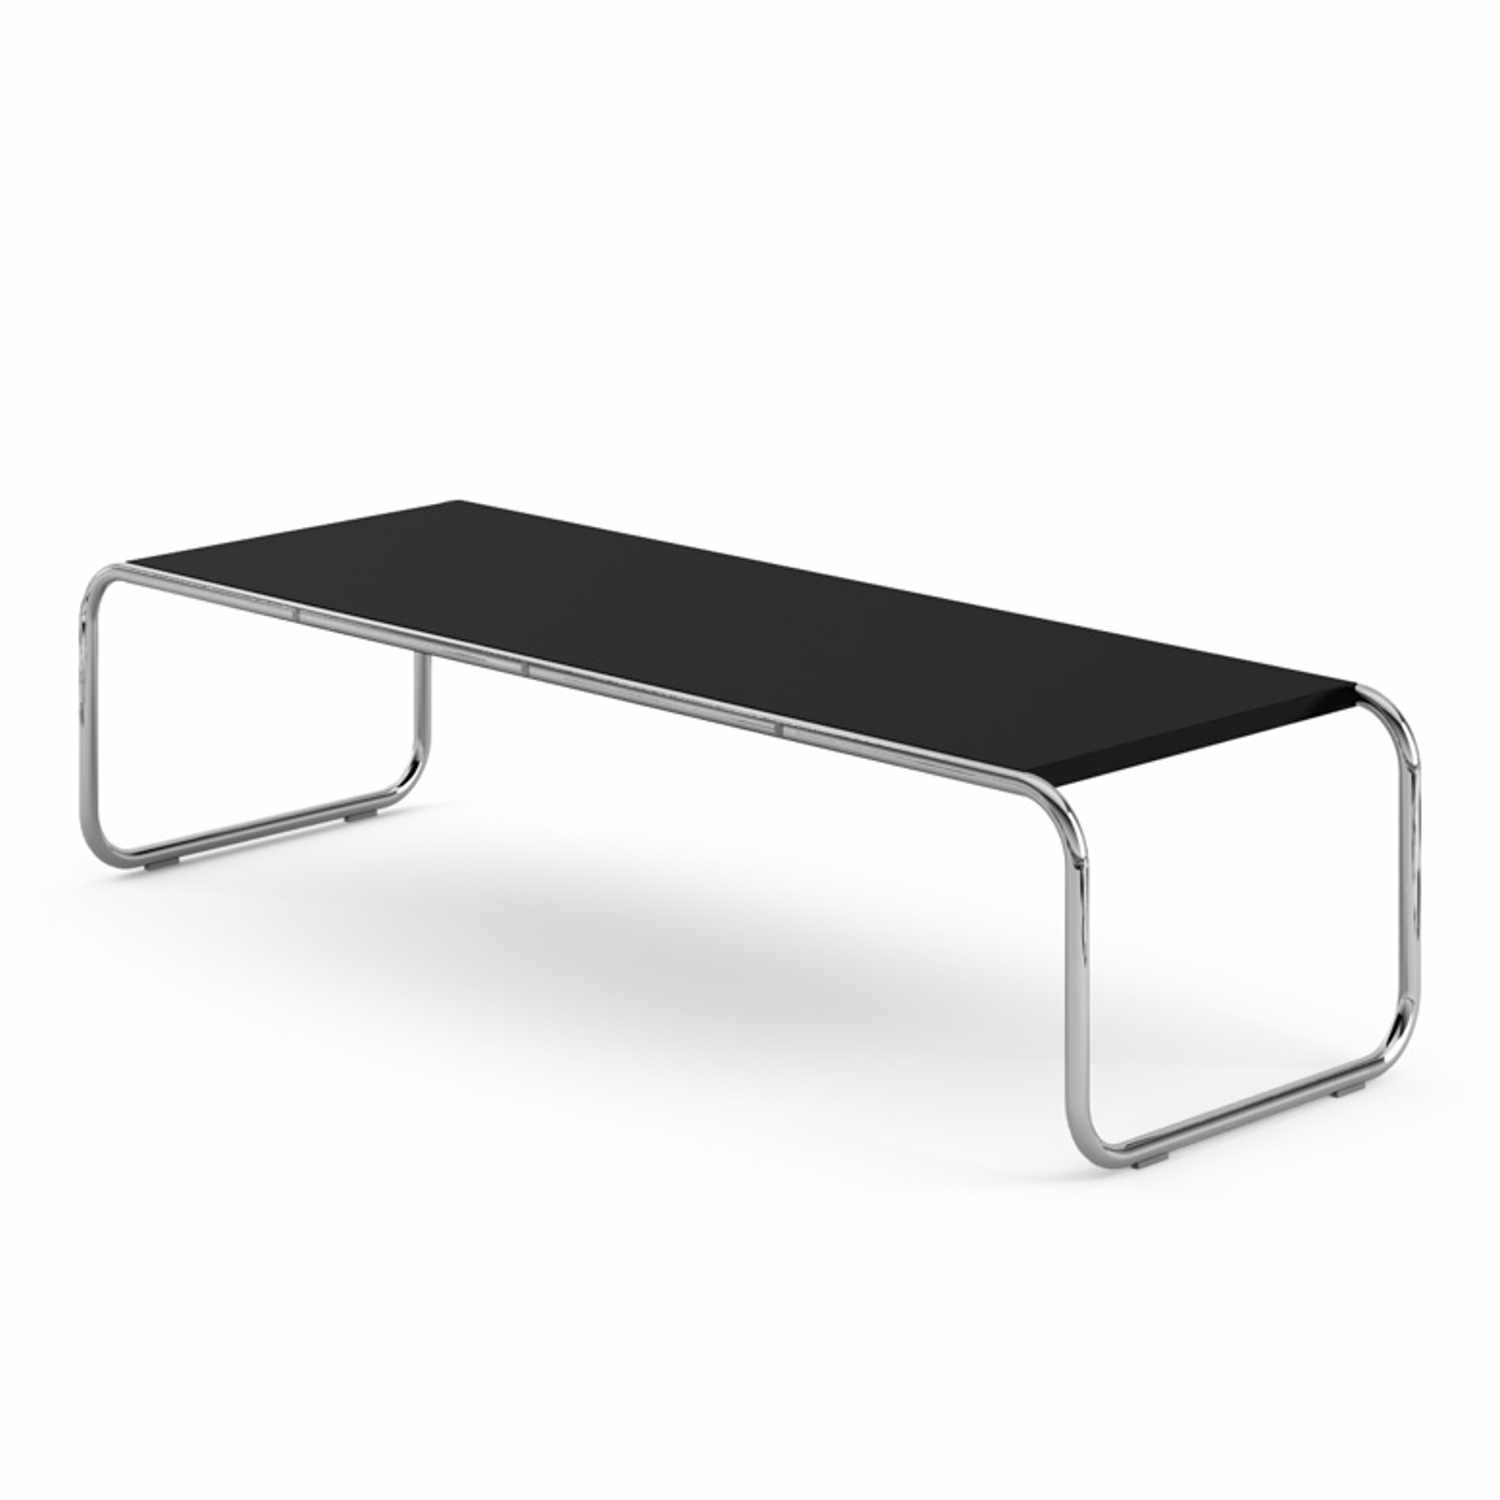 Knoll International Couchtisch Knoll International Laccio 2 Coffee Table Couchtisch